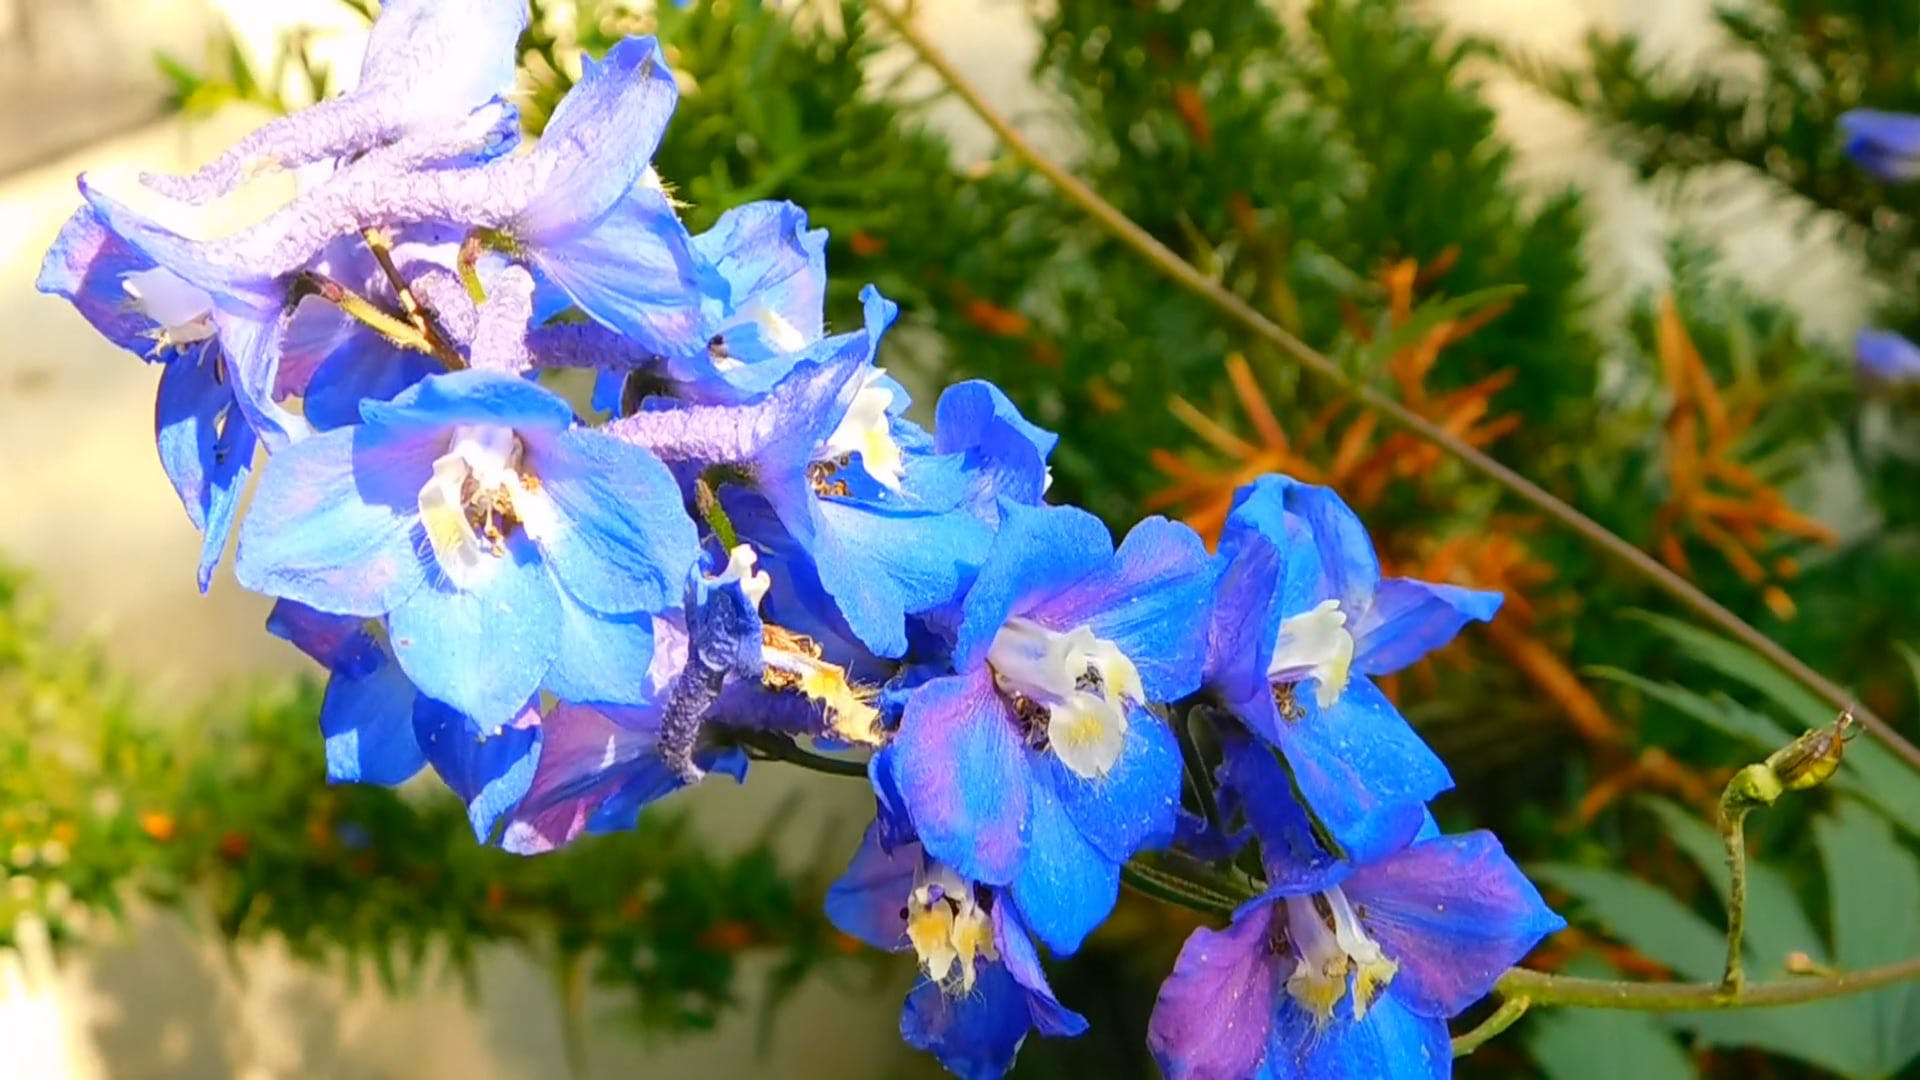 Close-up View Of Blue Flowers